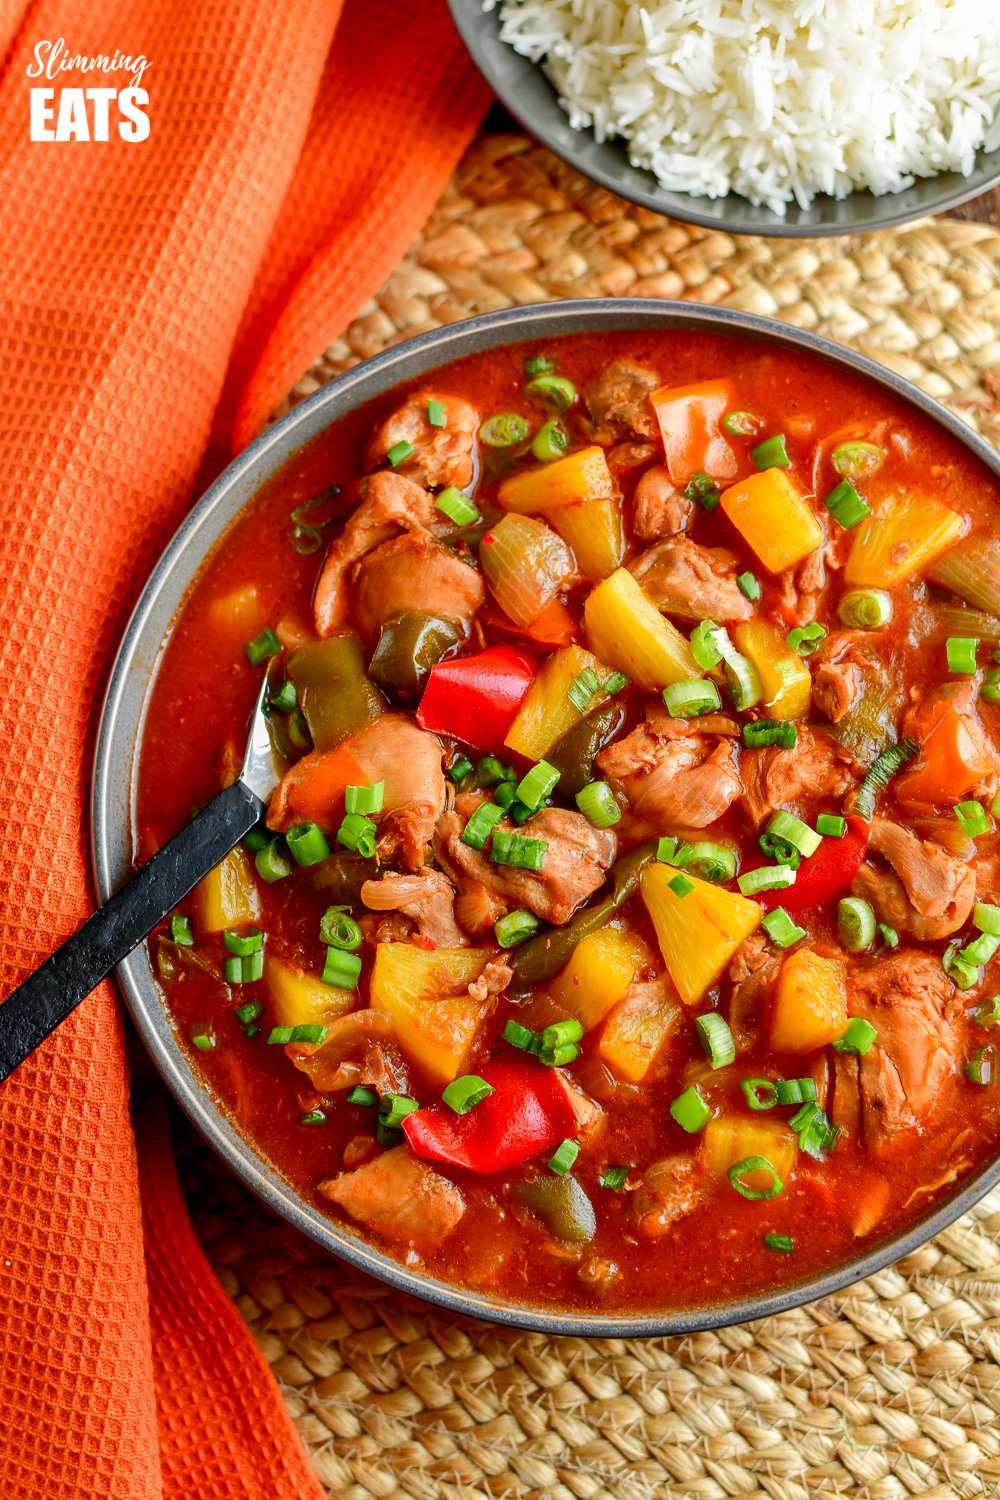 over the top view of instant pot sweet and sour chicken in grey bowl with black handled spoon.